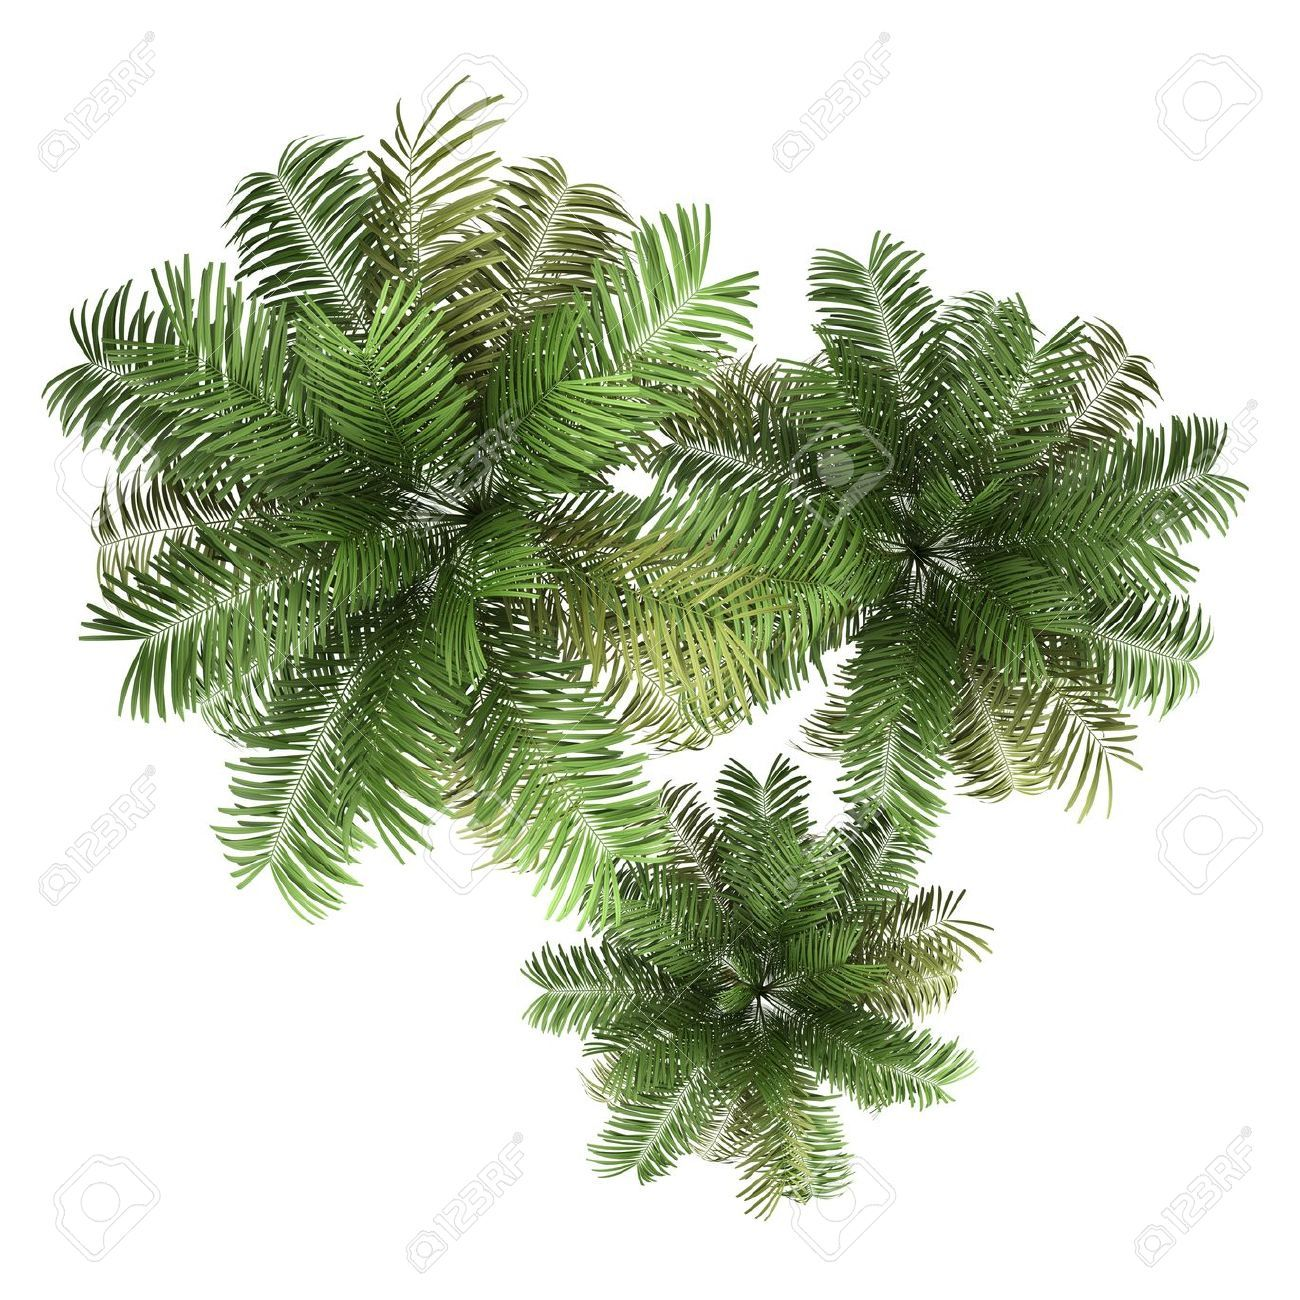 Top view plants 02 2d plant entourage for architecture - Plants Top View Top View Of Three Areca Palm Trees Isolated On White Background